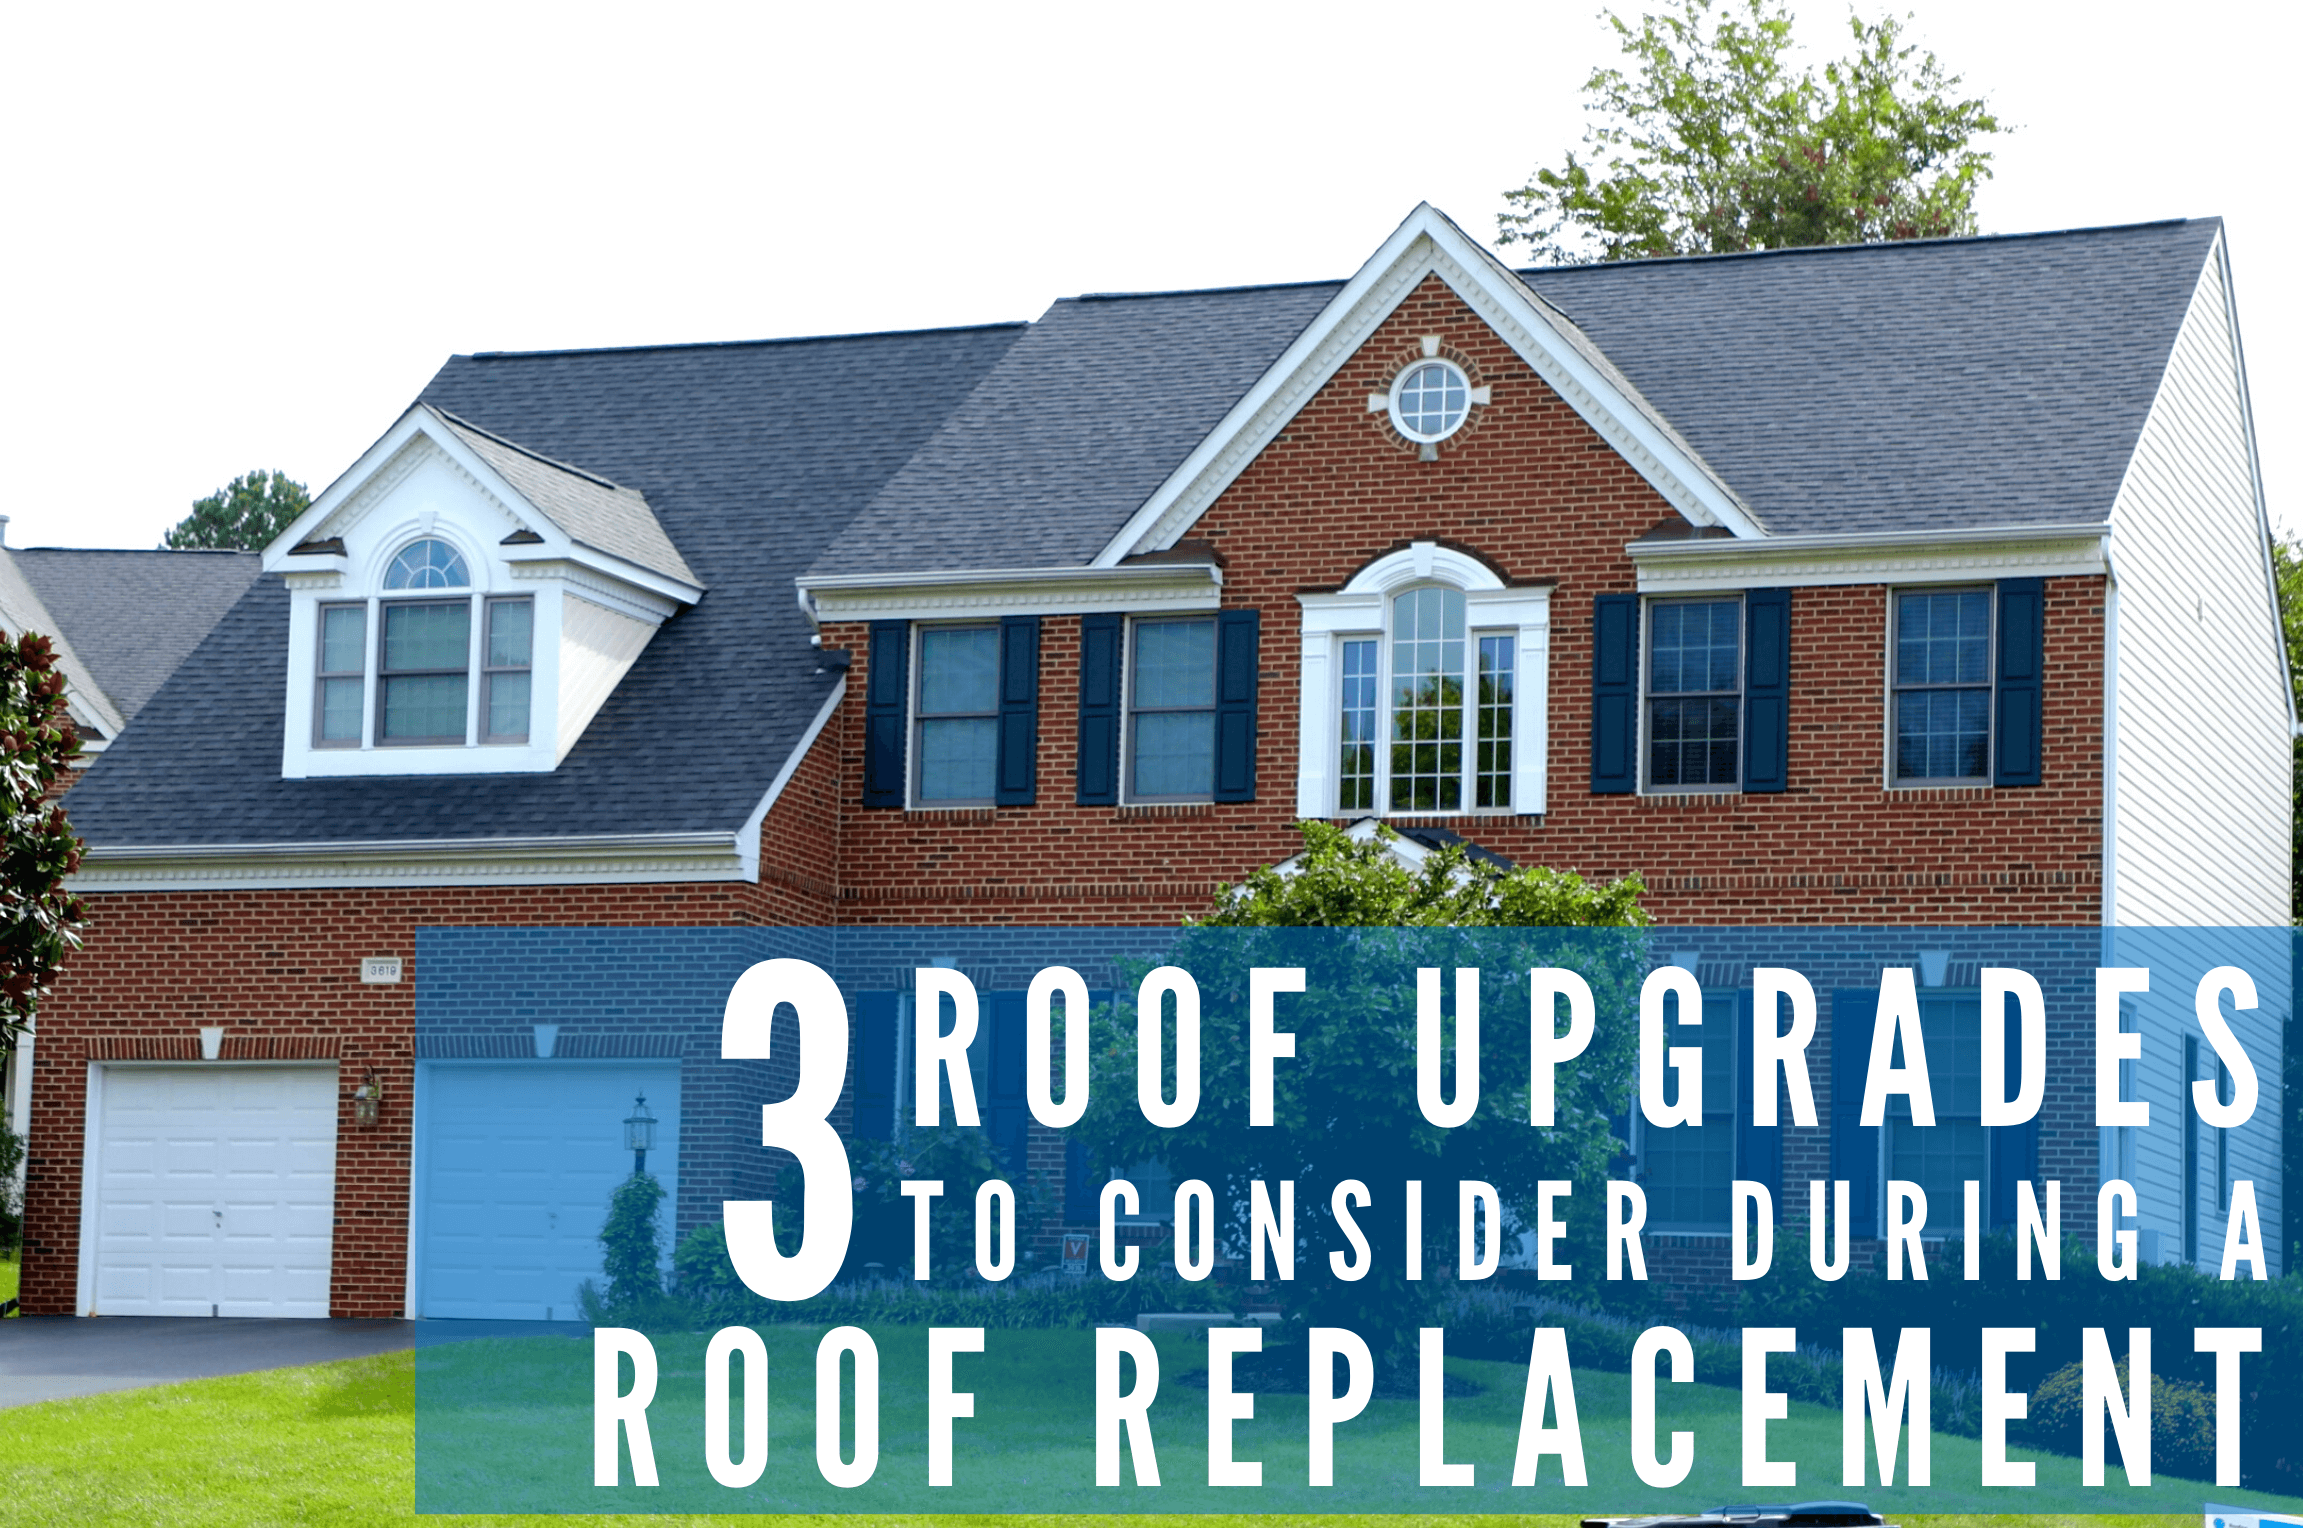 Upgrades to Consider During a Roof Replacement